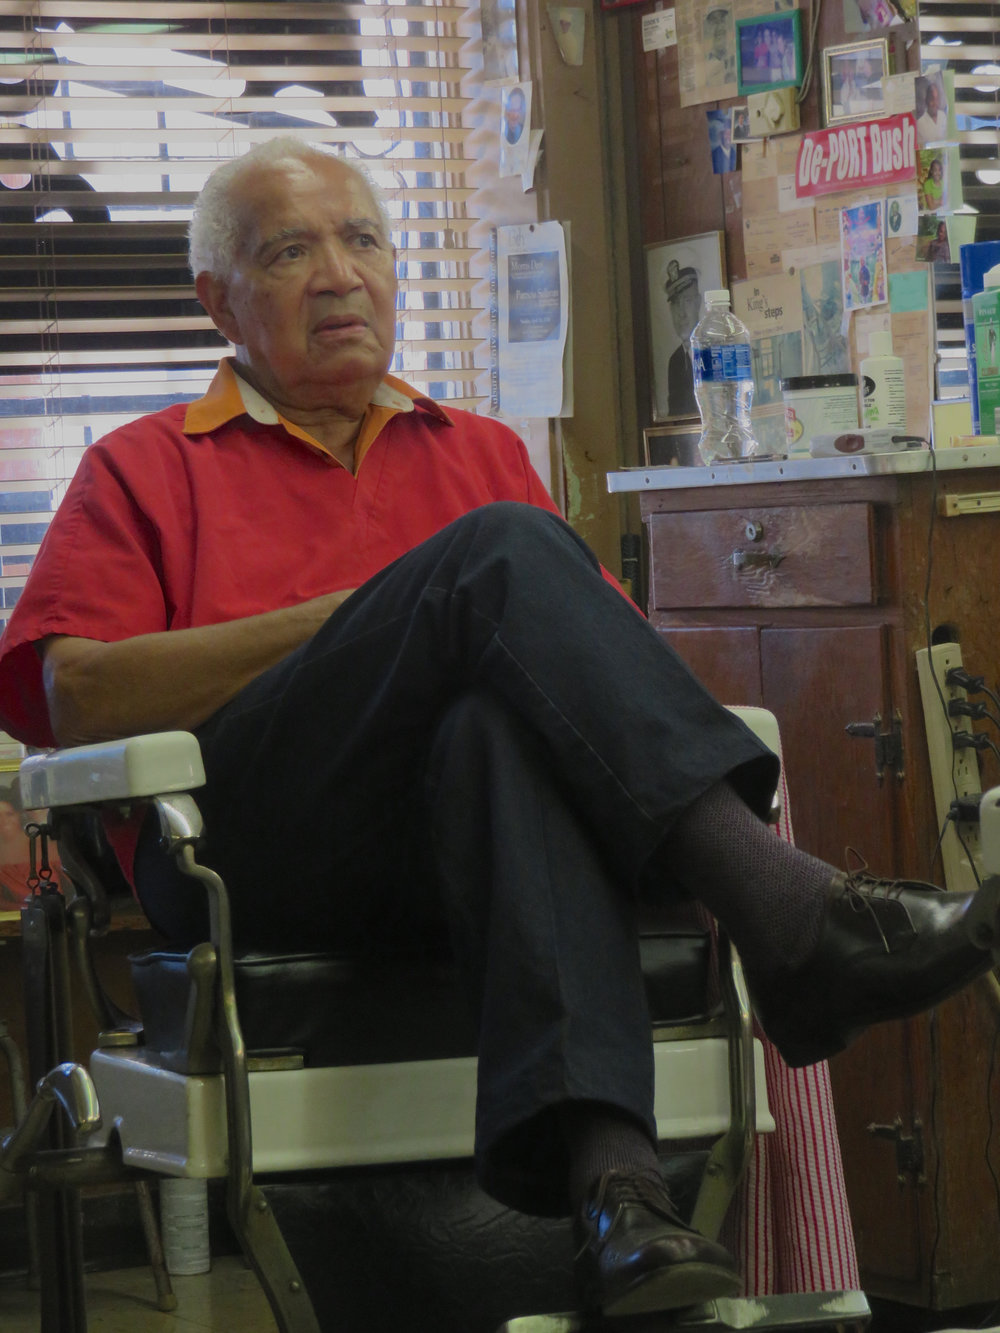 2017-4 nelson malden in barber chair.jpg